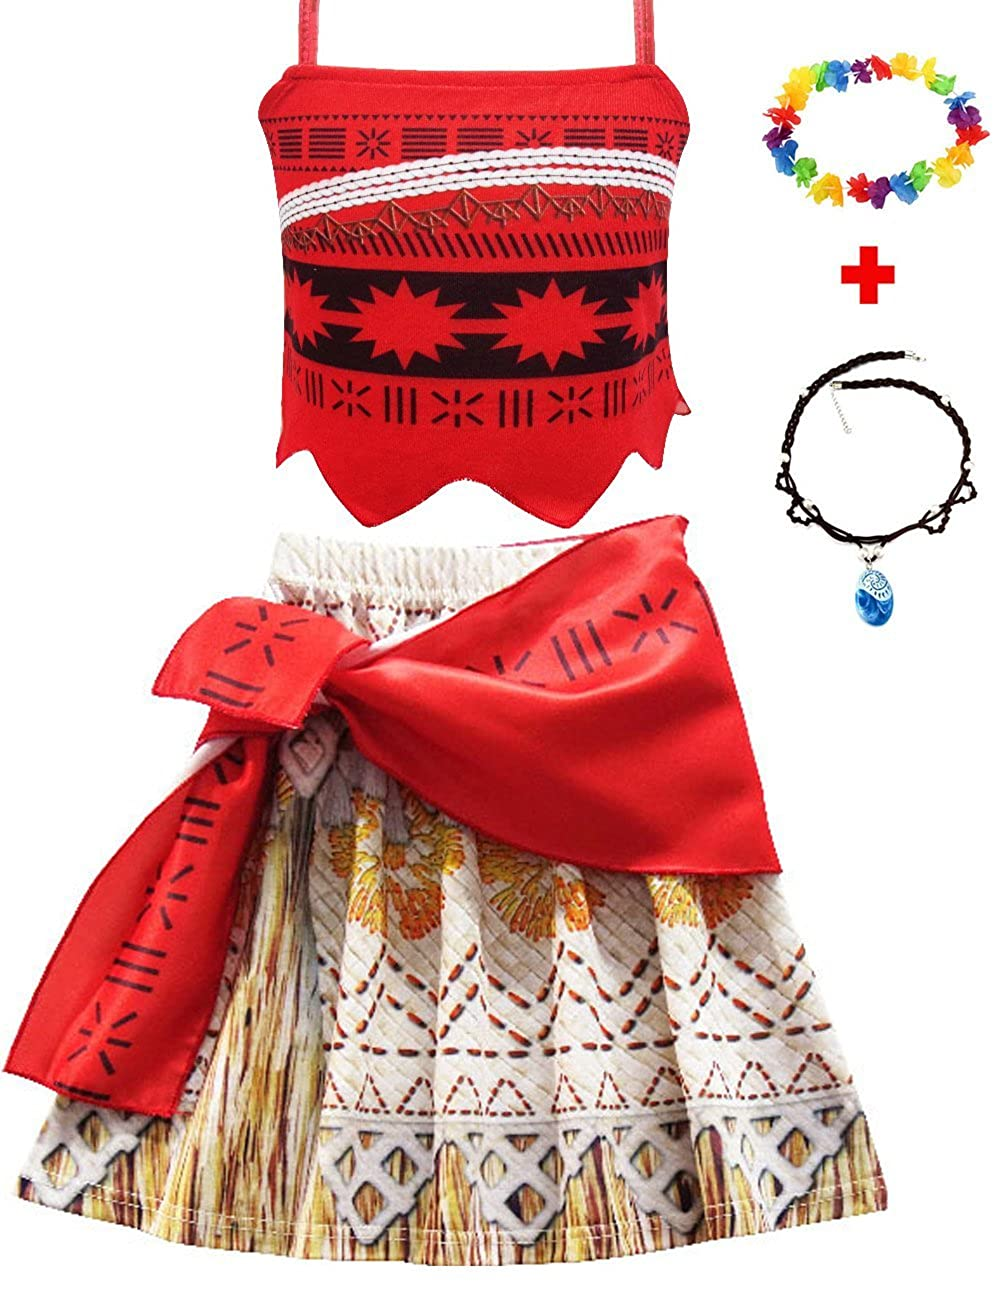 JYH Princess Moana Adventure Costume Two-Piece Skirt Set Party Dress for Girls with Necklace and Headband M05216101